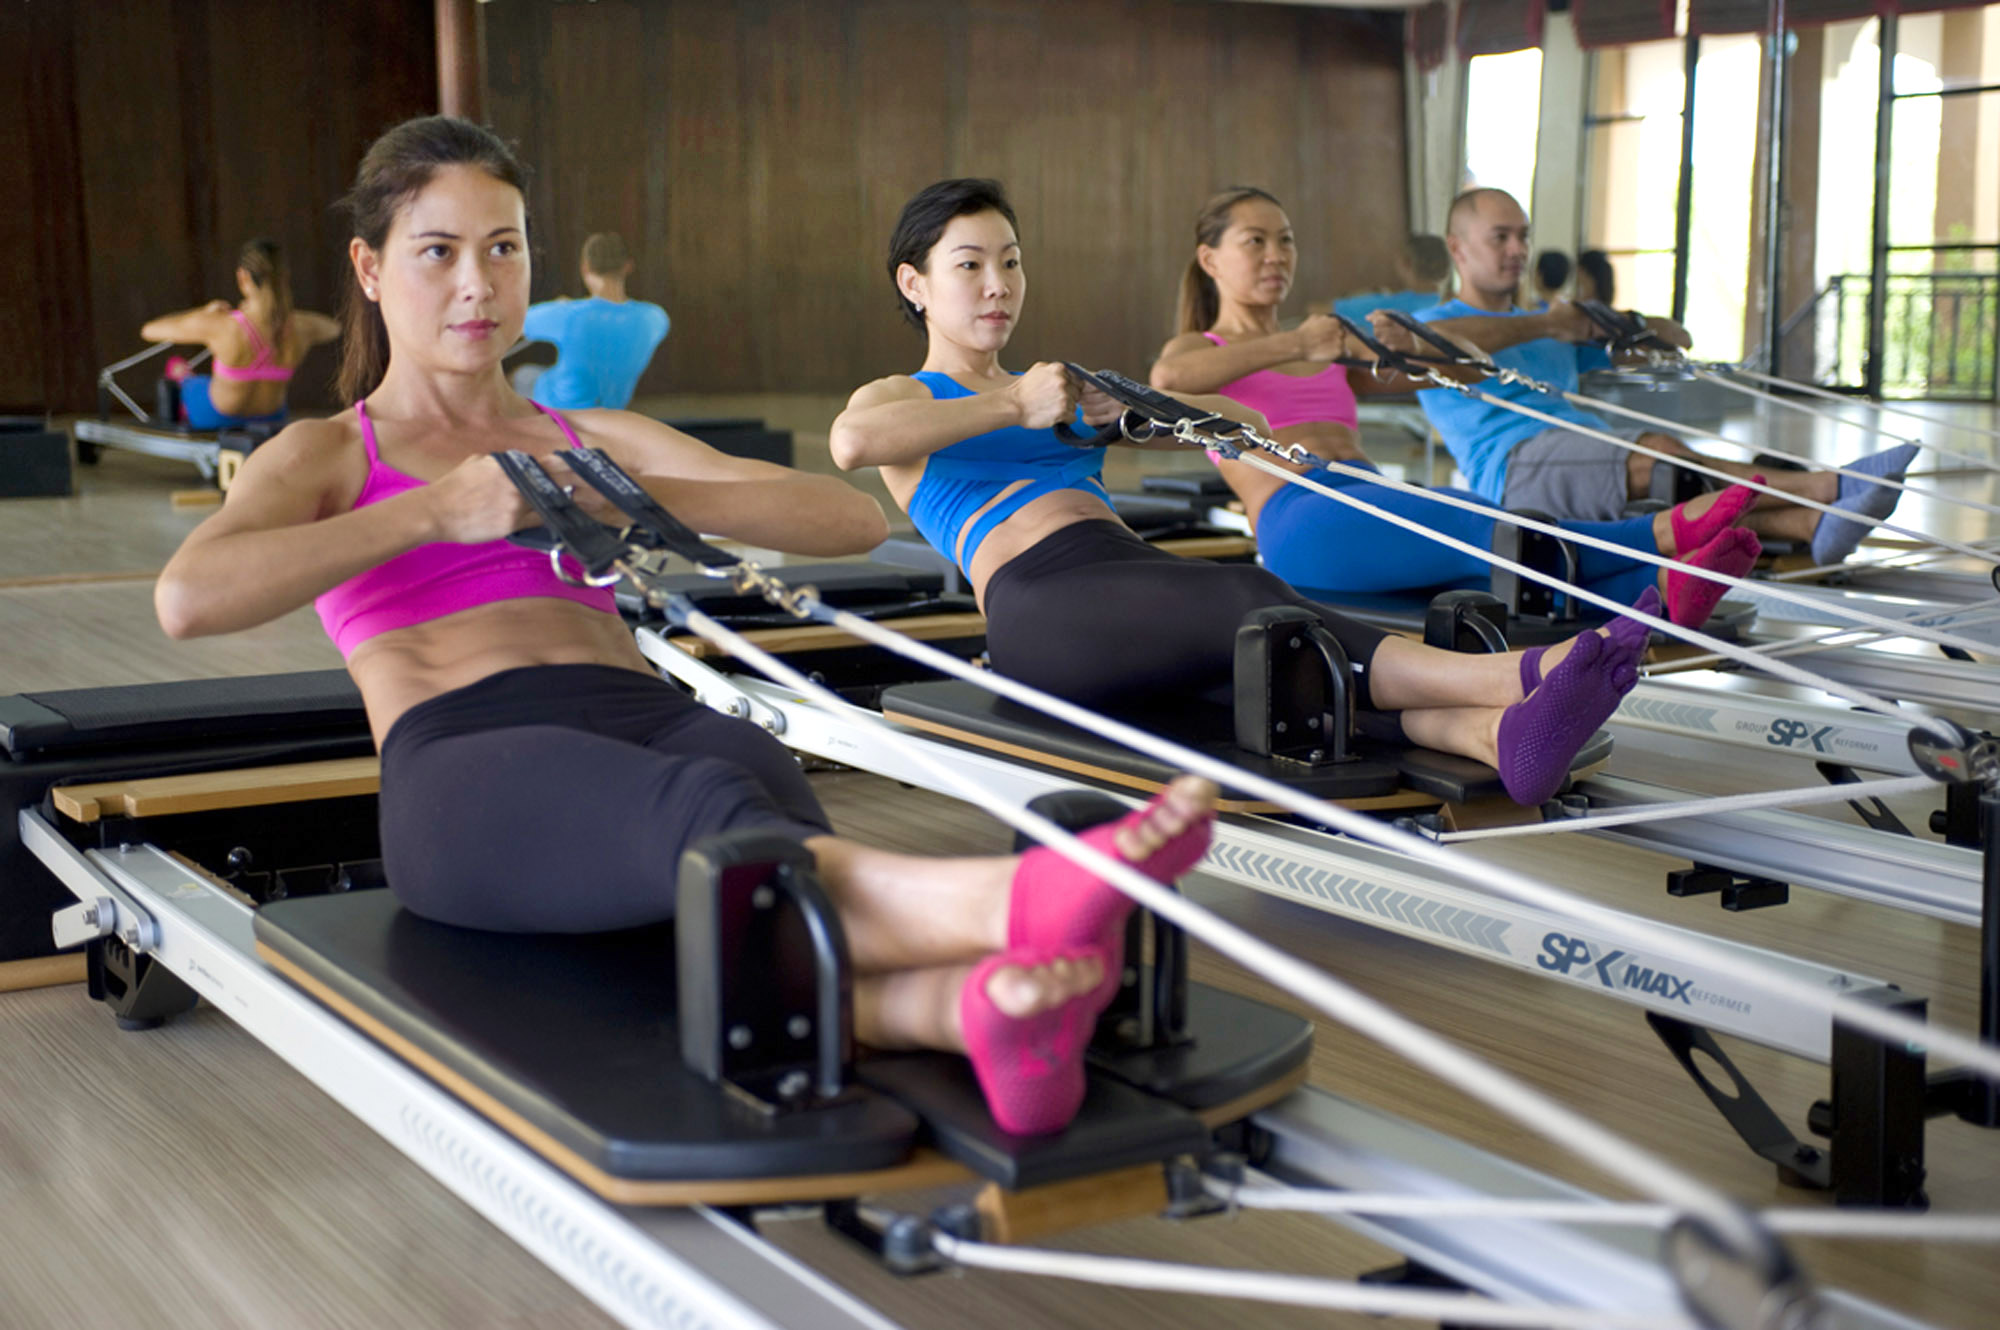 Absolute-Sanctuary-pilates-reformer